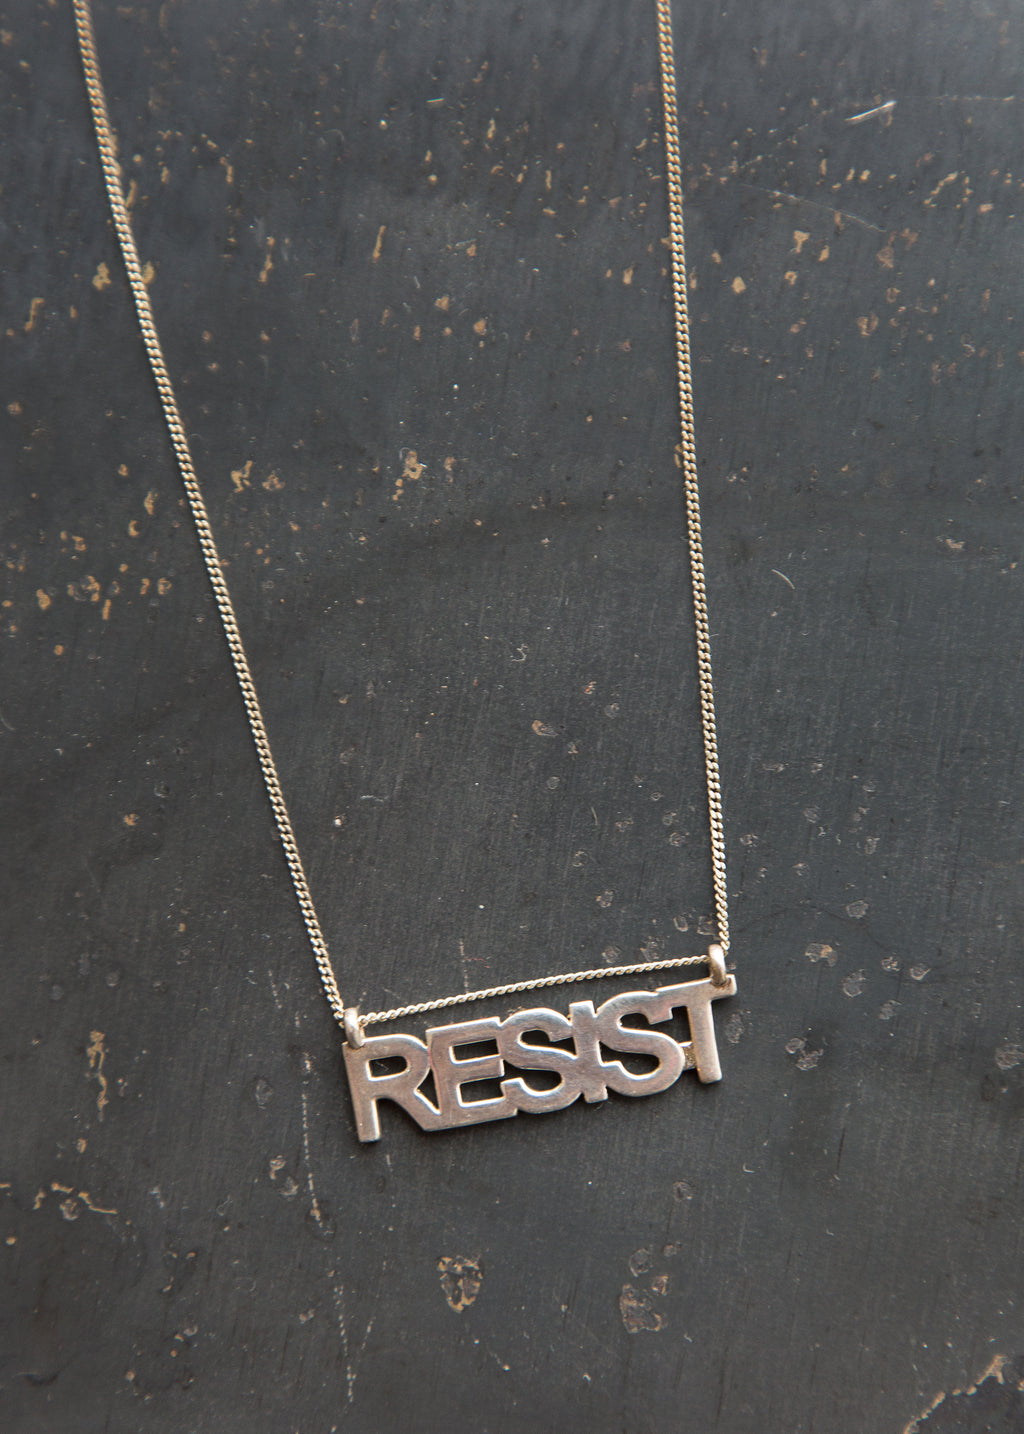 Janesko Resist Necklace Sterling Silver - SOLD OUT